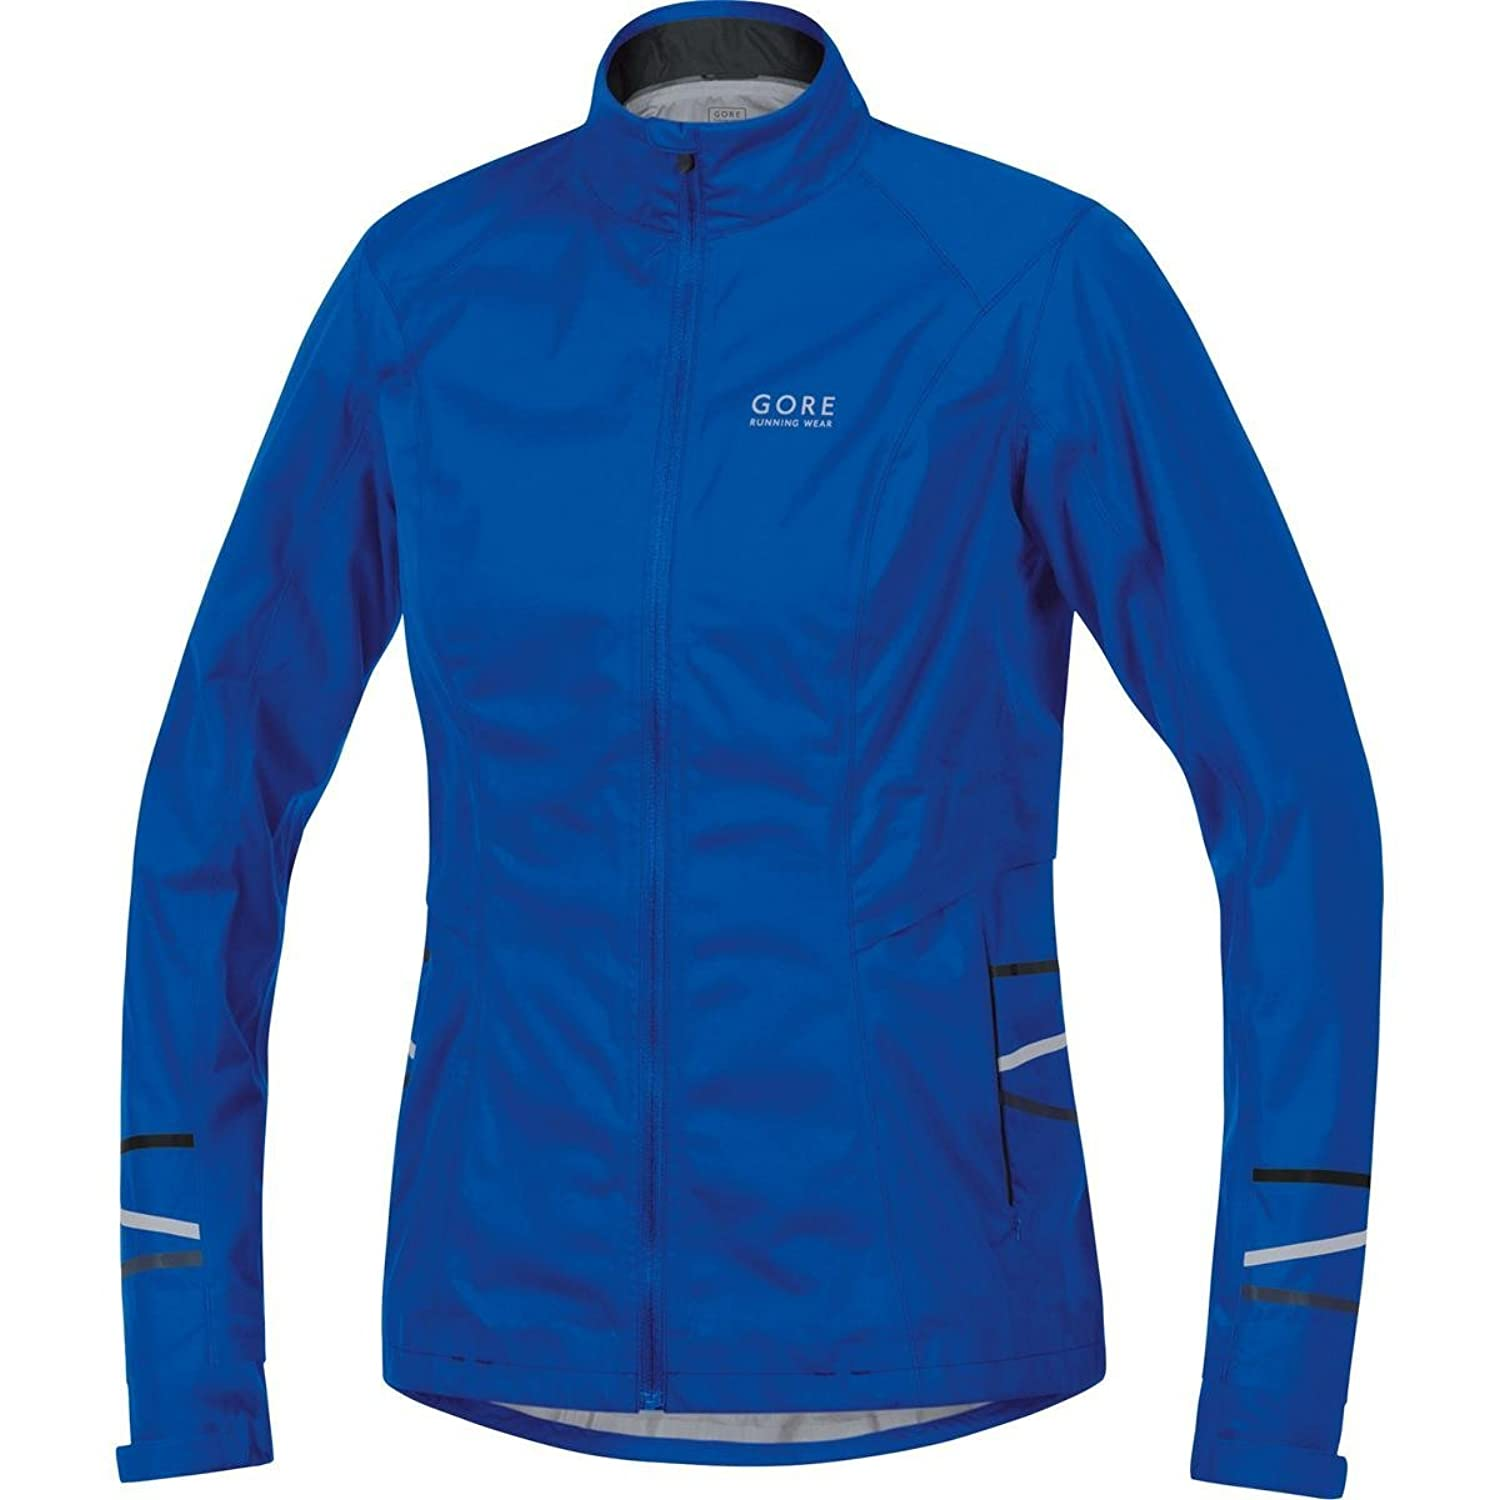 Gore Running Wear Damen Jacke myhtos 2 tex Active Jacket